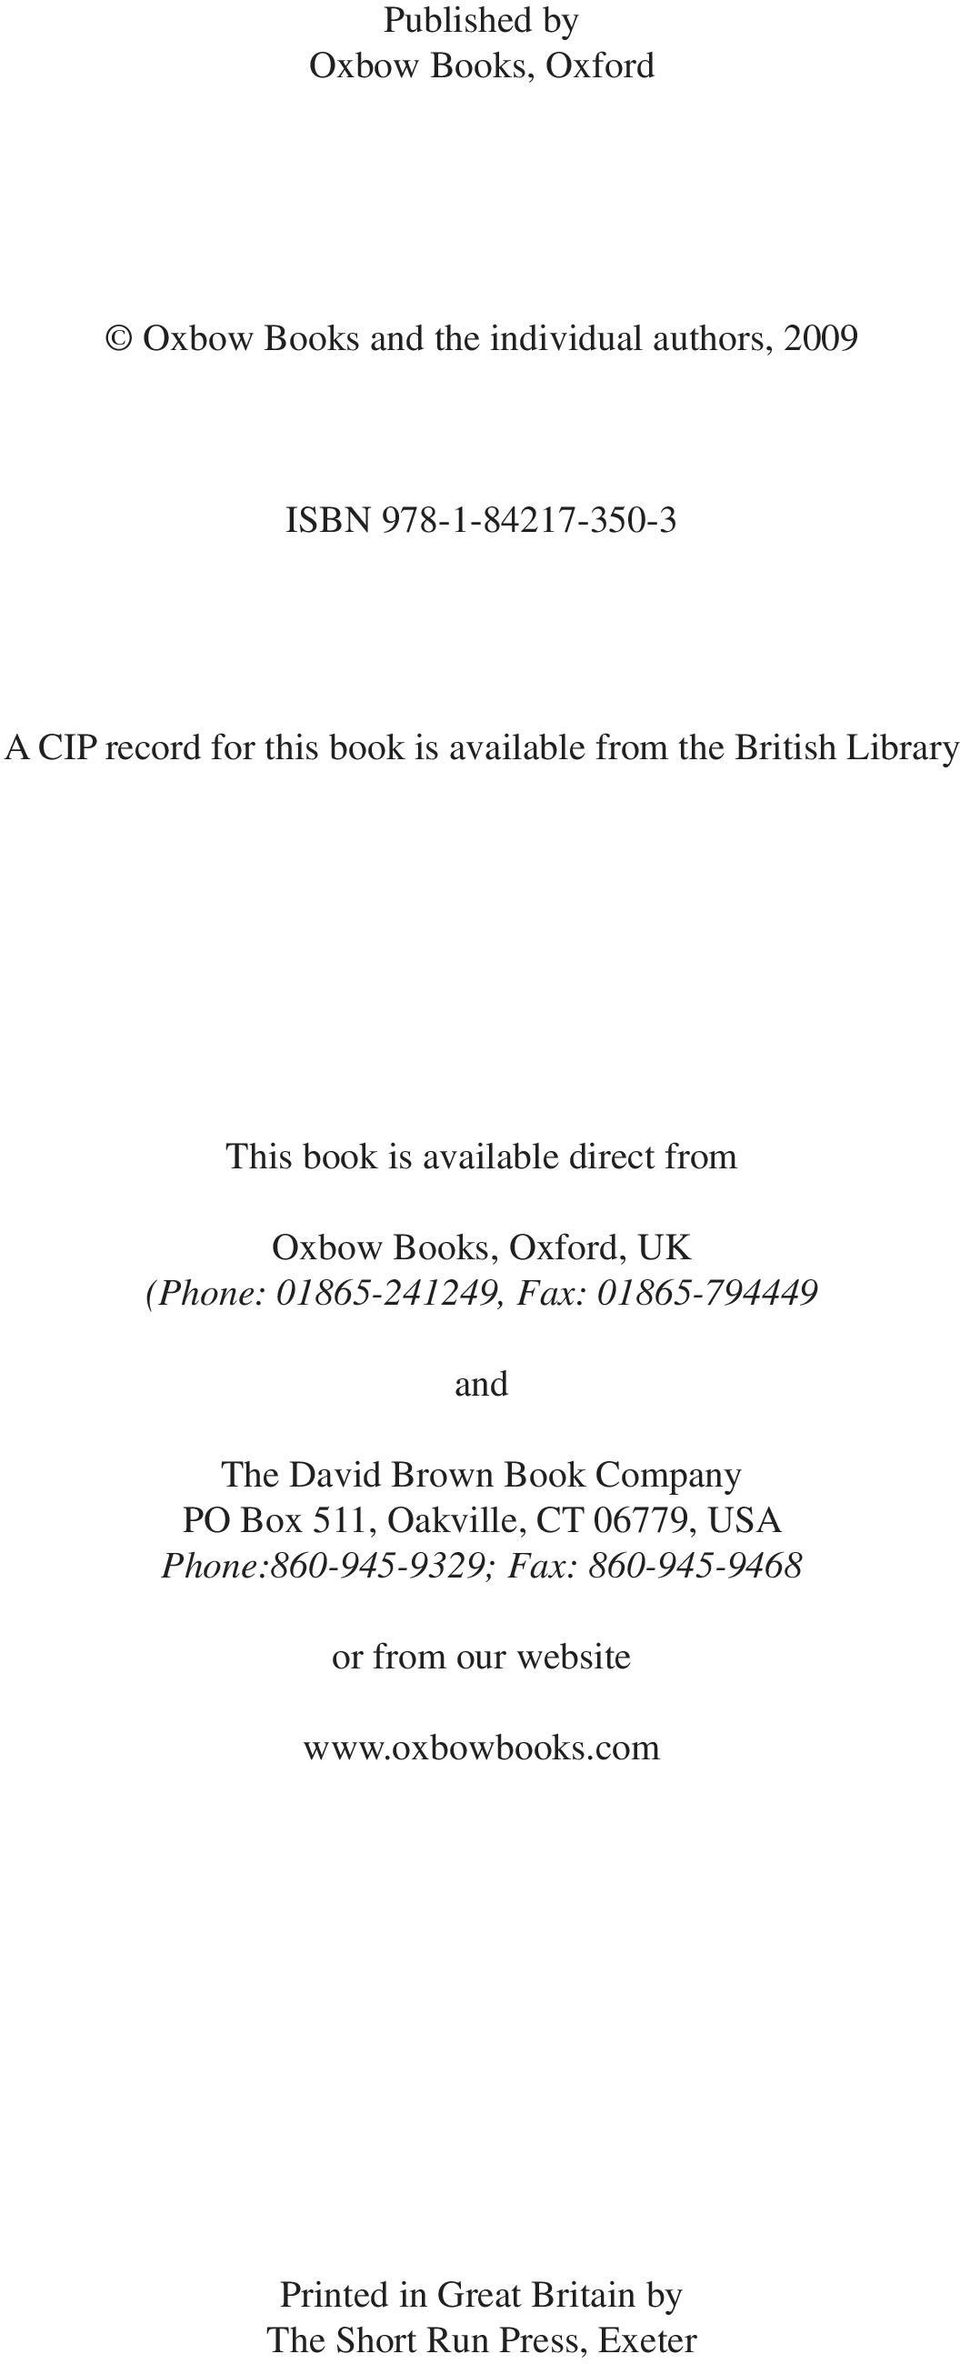 (Phone: 01865-241249, Fax: 01865-794449 and The David Brown Book Company PO Box 511, Oakville, CT 06779, USA